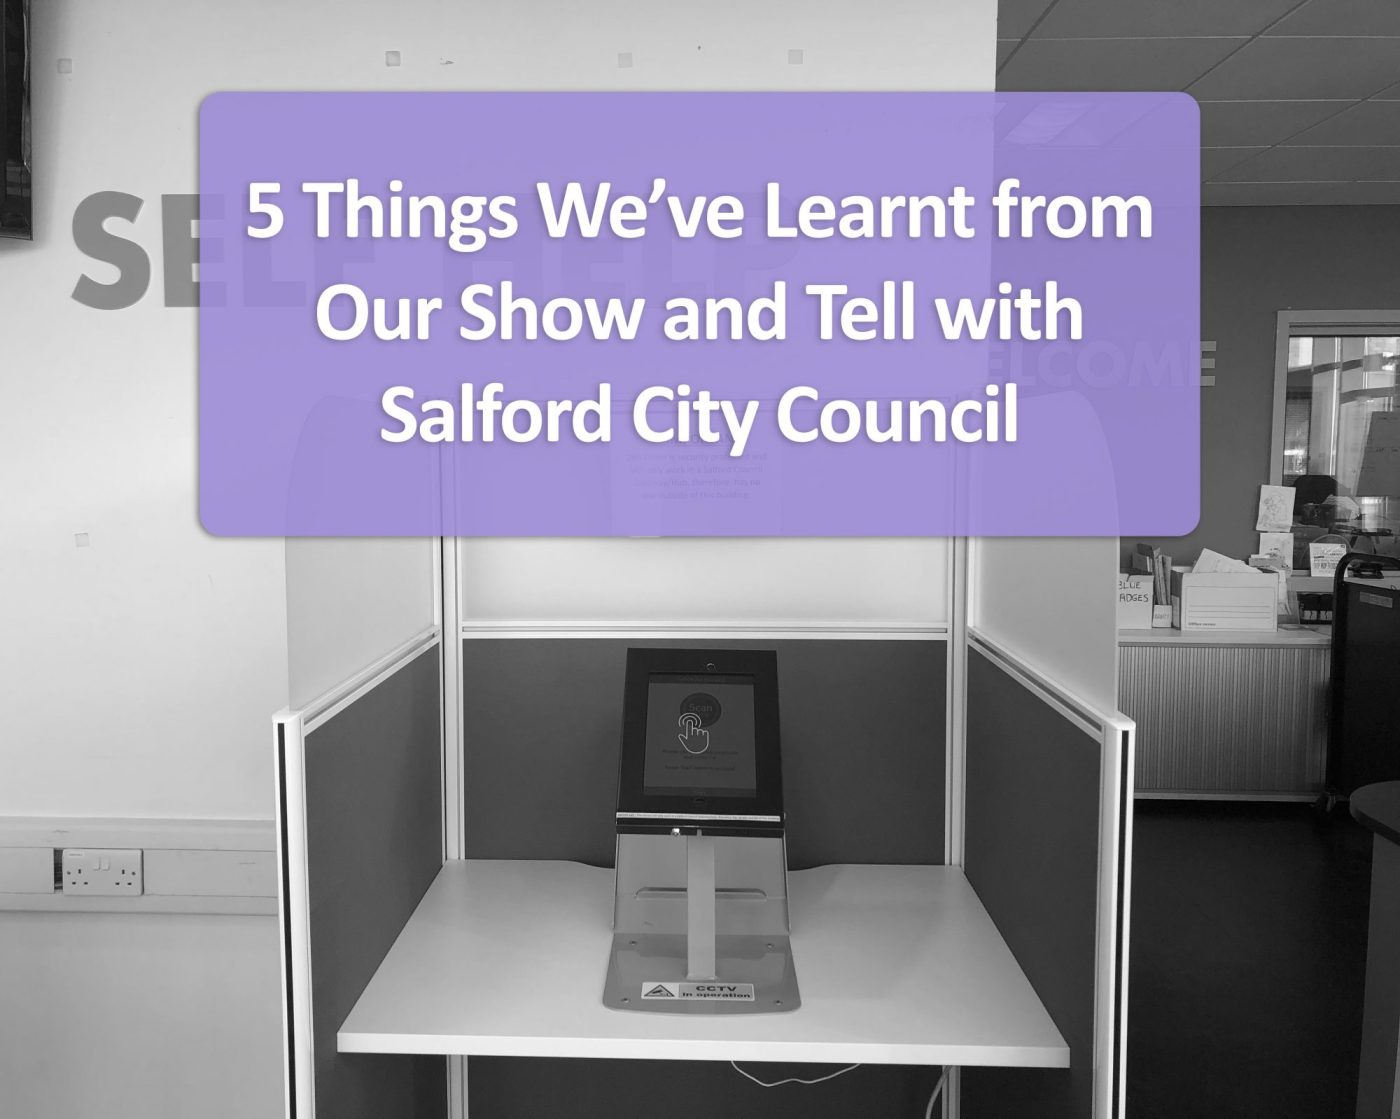 5 Things We've Learnt From Our Show and Tell with Salford City Council